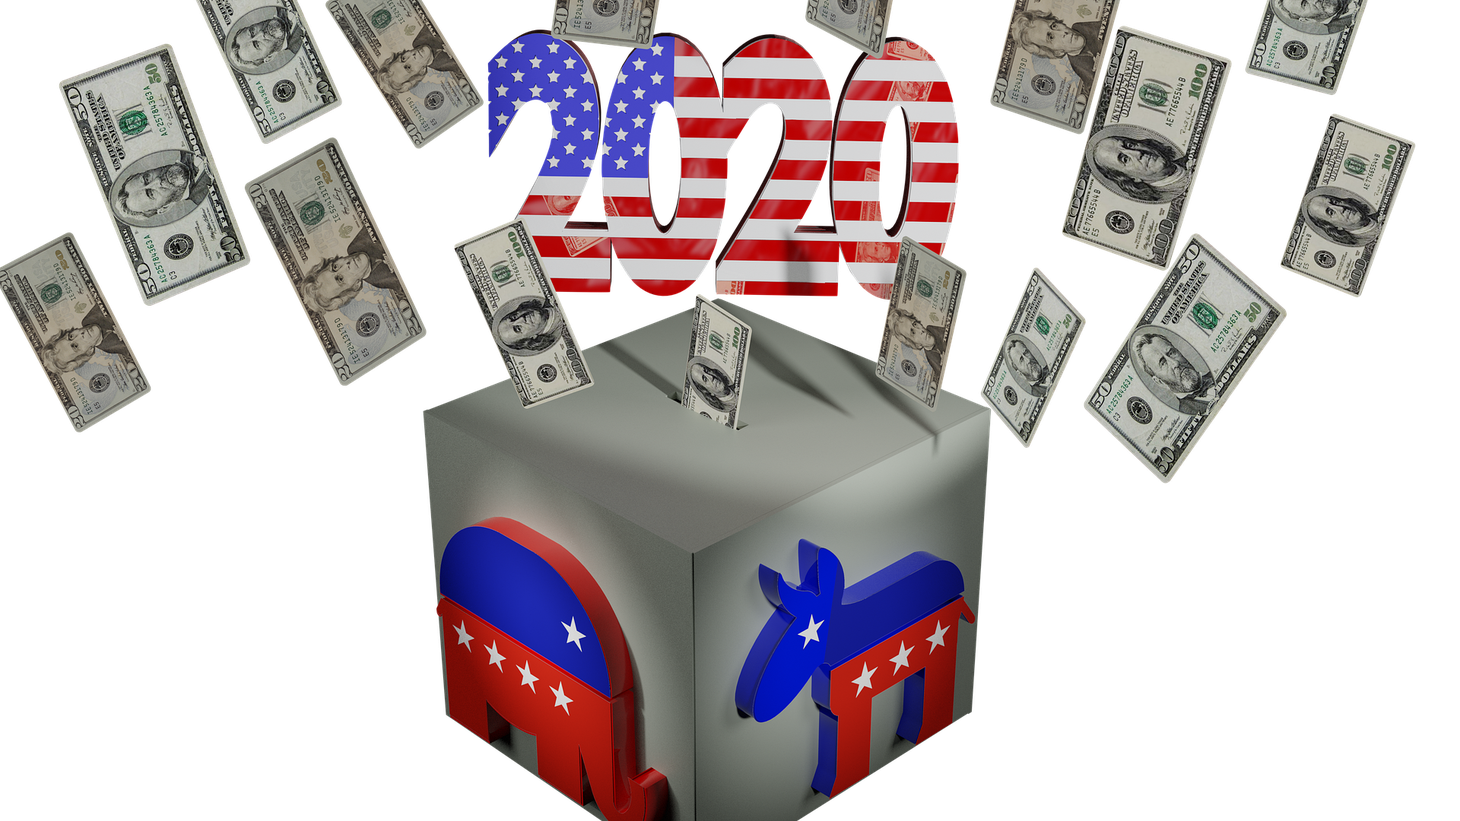 2020 campaign fundraising illustration.